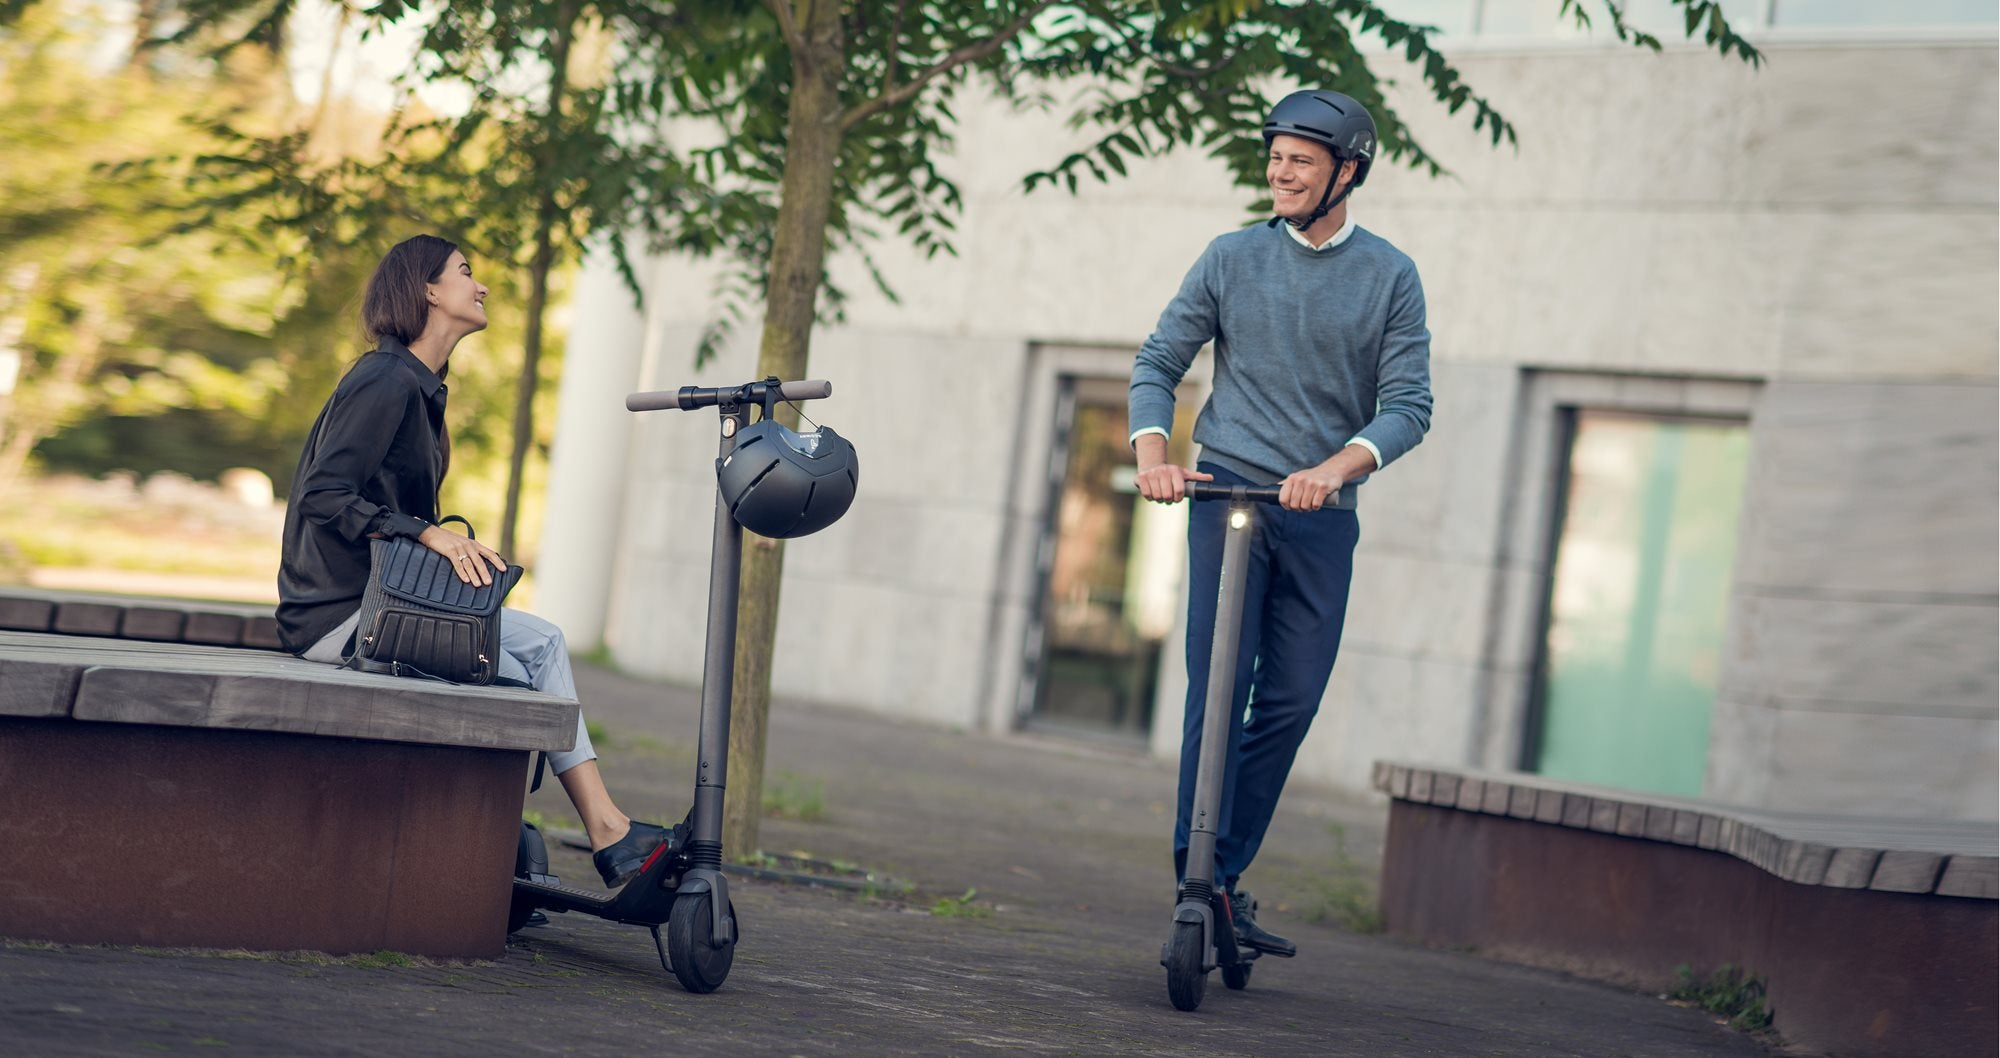 Ninebot ES2 Scooters from UK Supplier Electrazoom